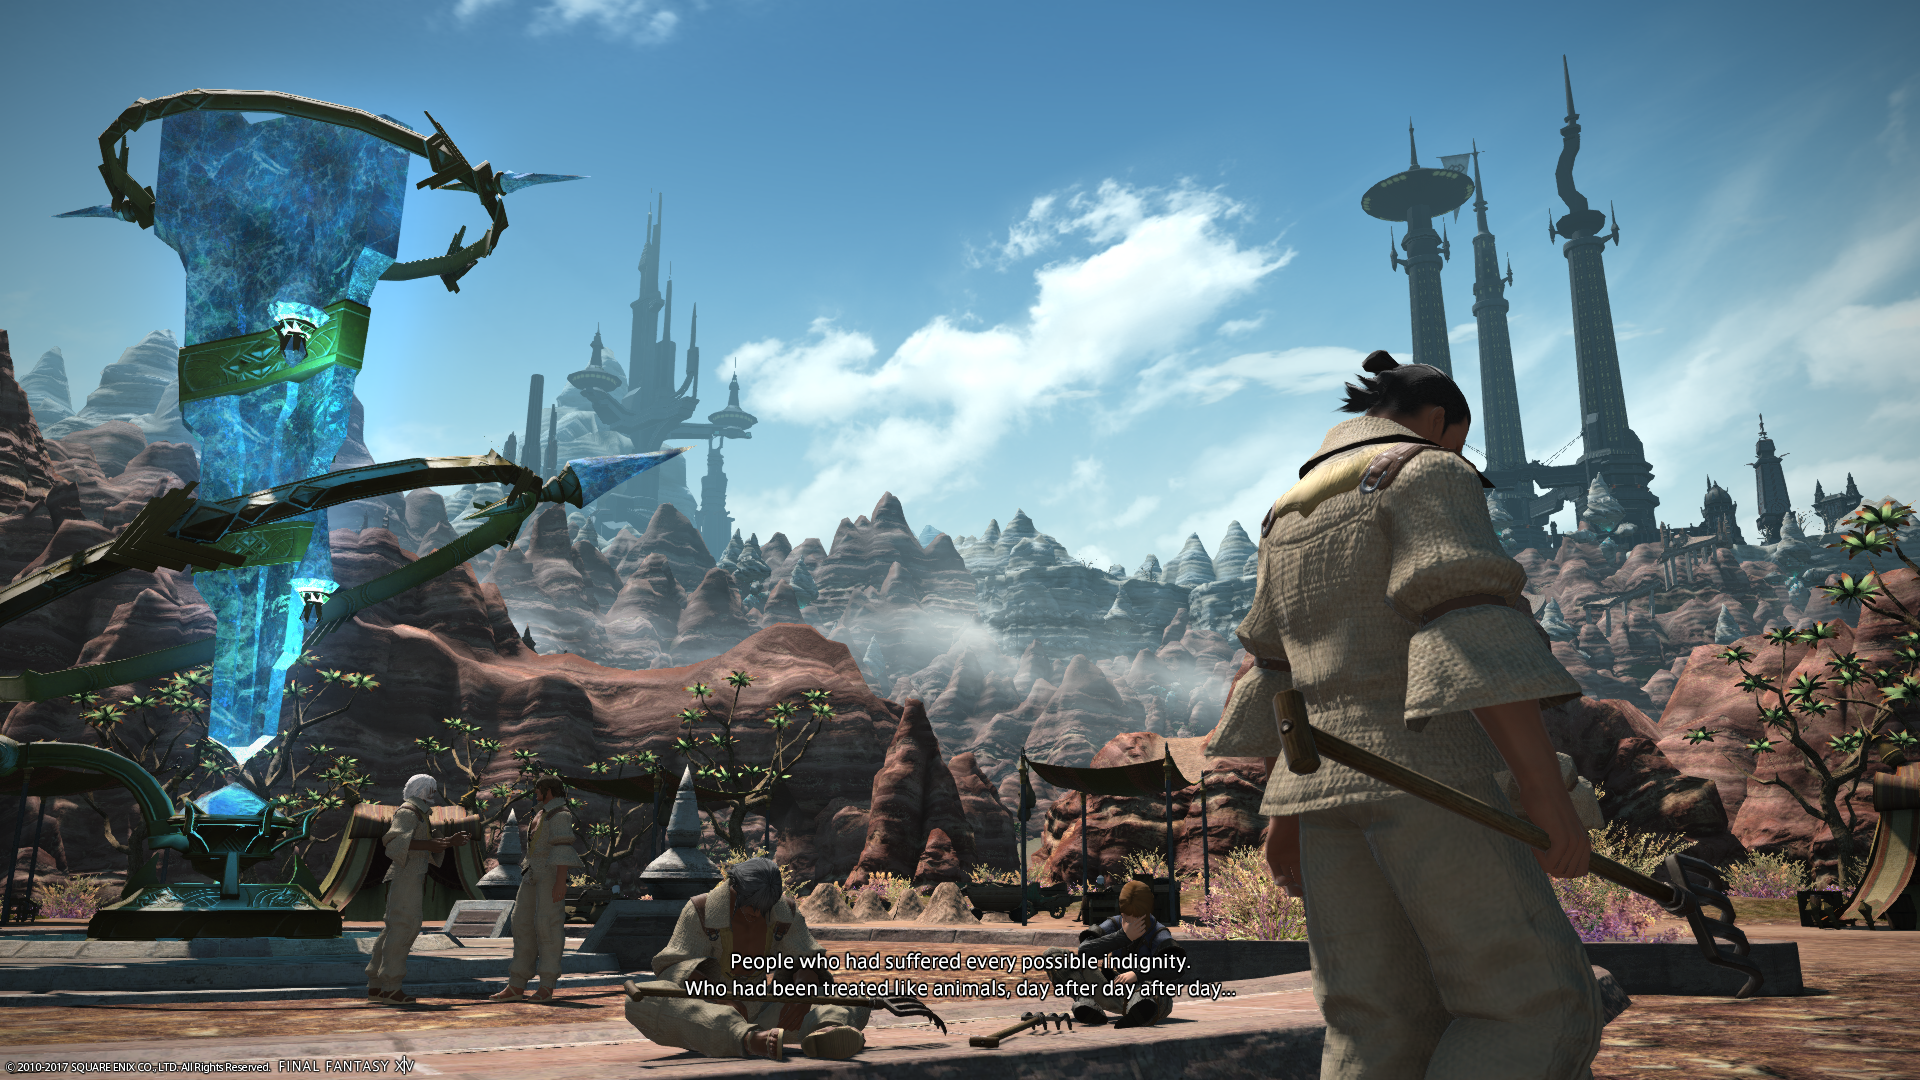 Final Fantasy Xiv Stormblood Makes Its Colonialism As Awful As It